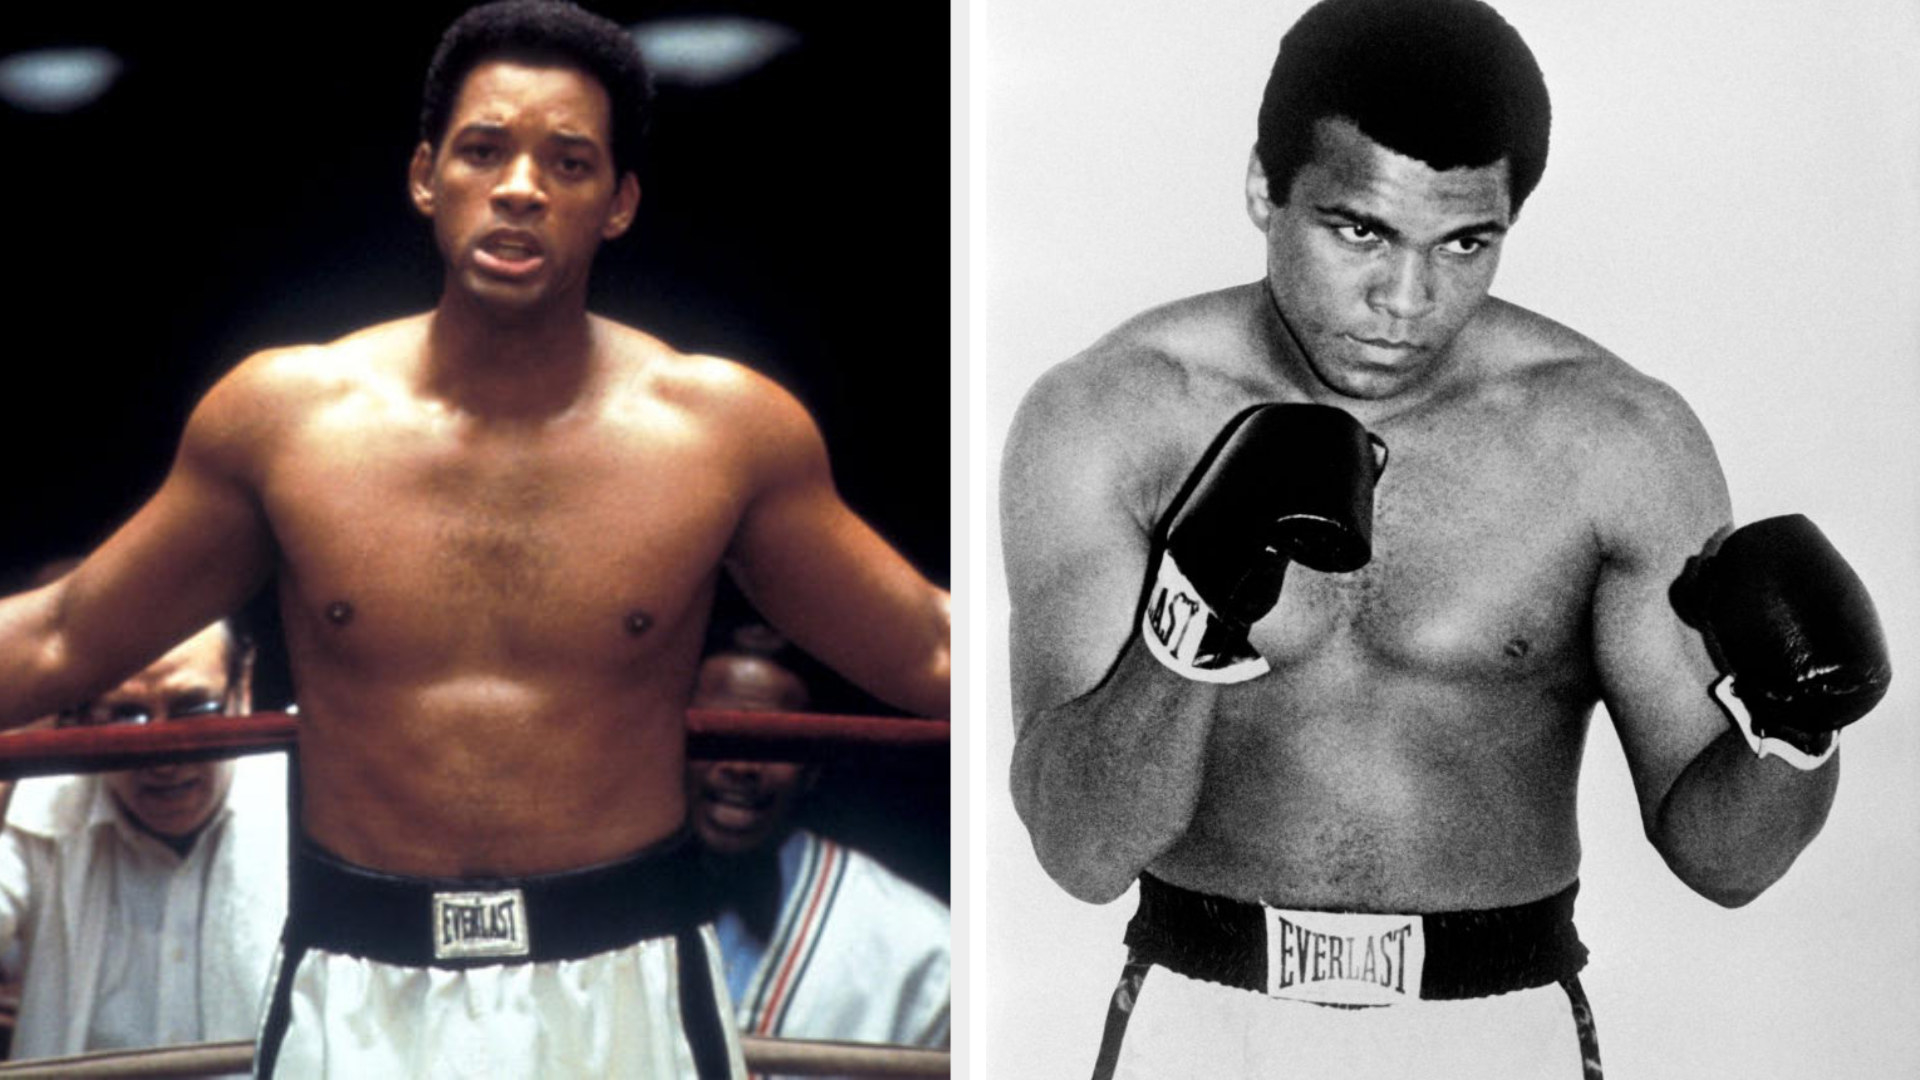 Will Smith as Muhammad Ali, standing in the corner of a boxing ring with a determined expression on his face; Muhammad Ali posing for a picture in a boxing stance, a determined expression on his face, wearing Everlast boxing gloves